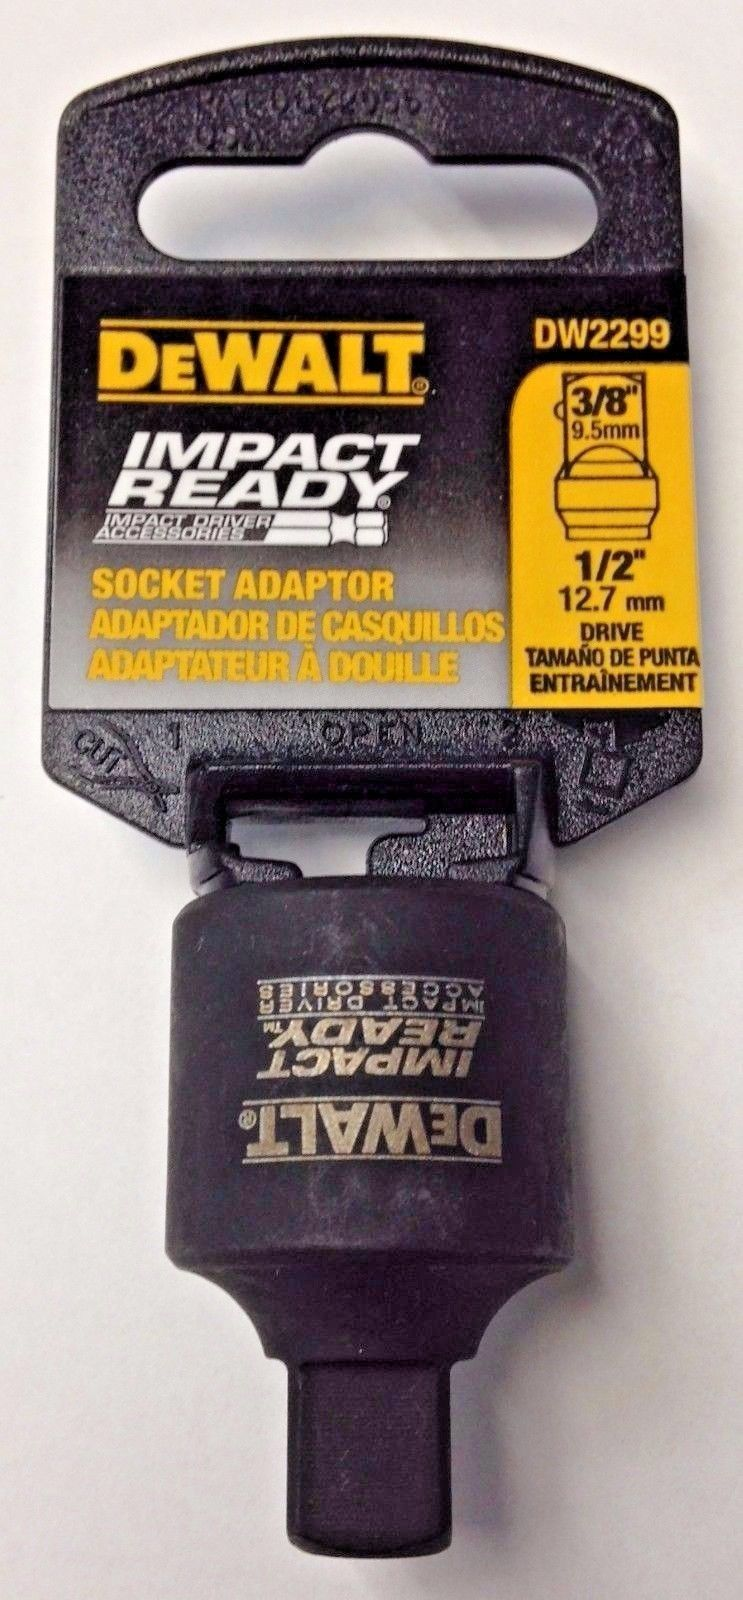 DeWalt DW2299 Impact Ready Socket Adapter 1/2